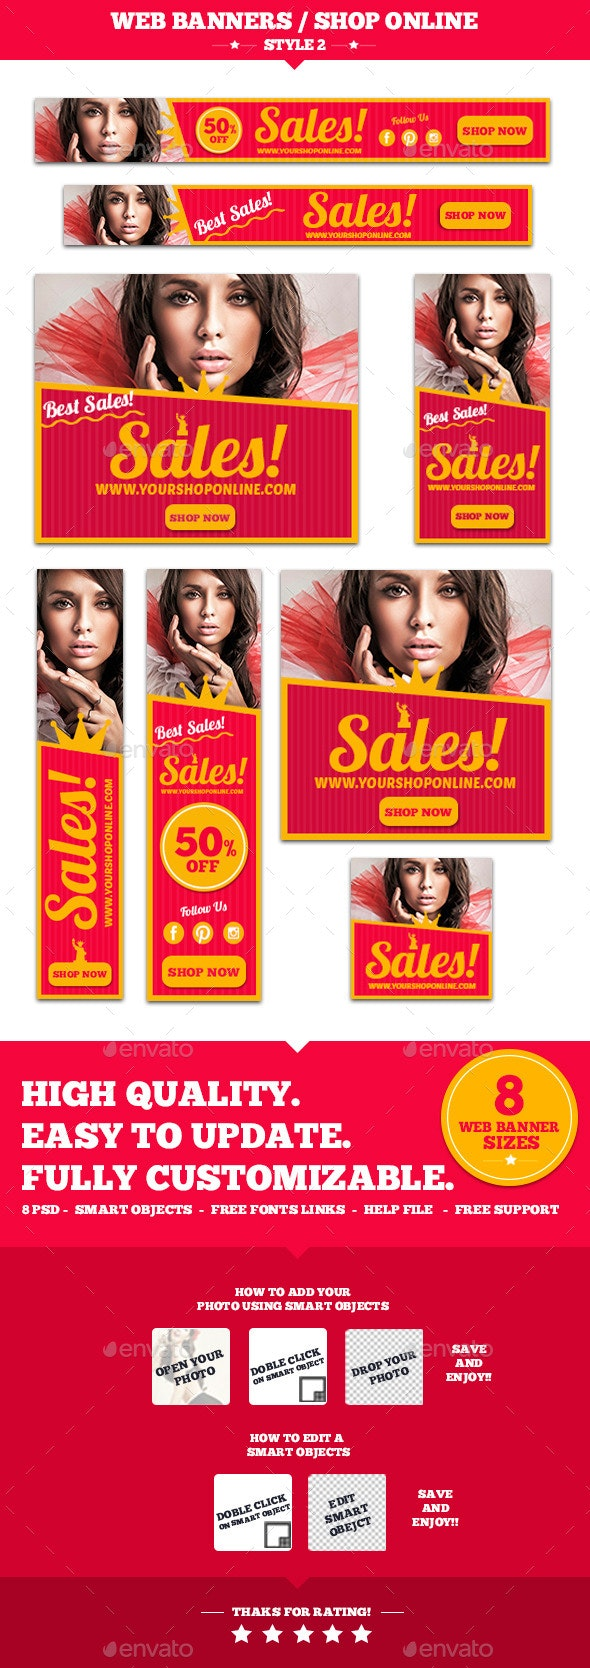 Web Banners Shop Online Style 2 - Banners & Ads Web Elements